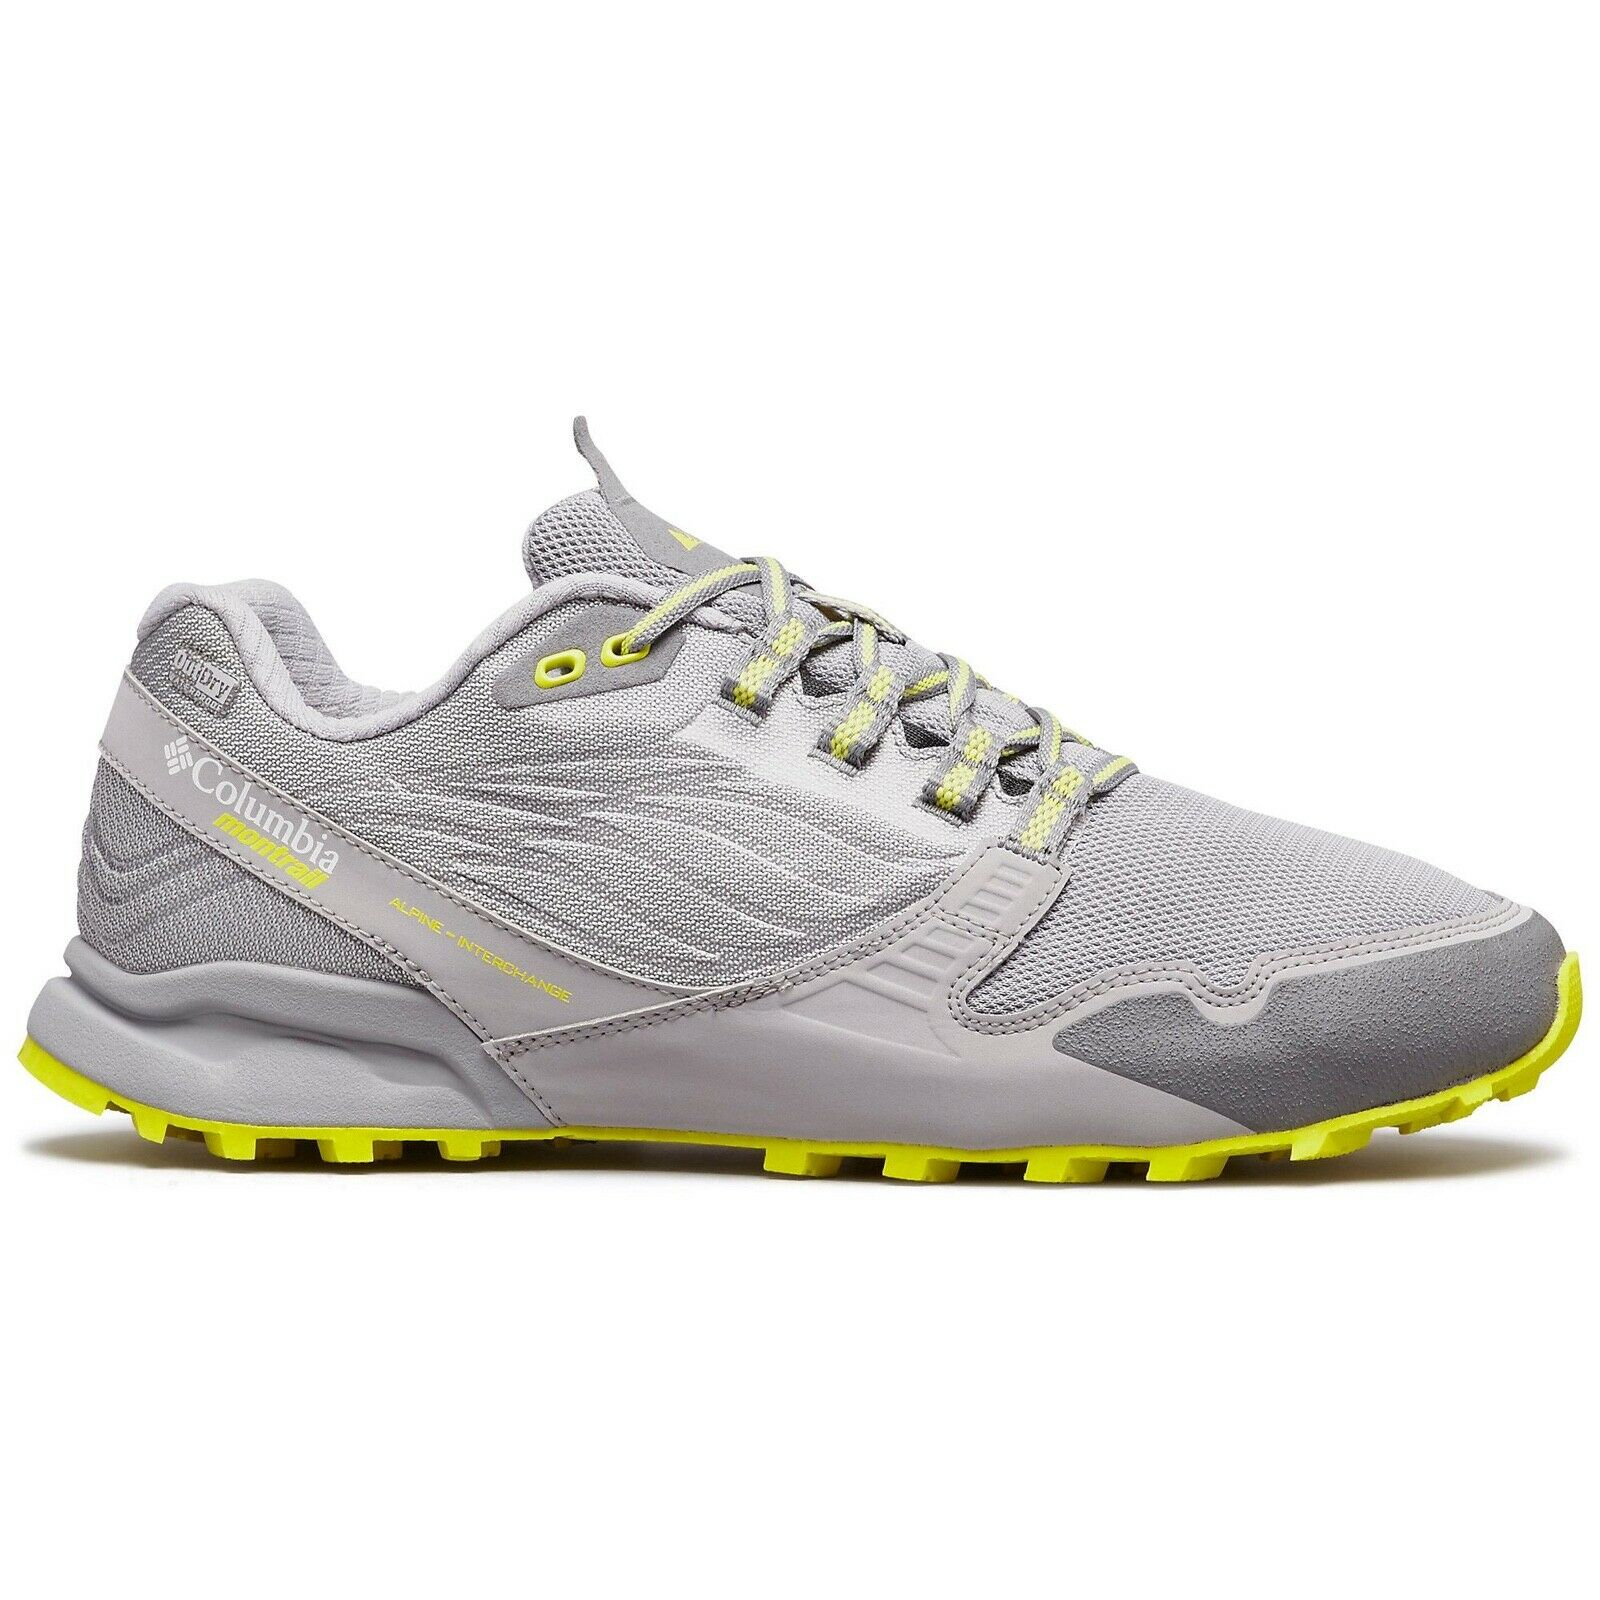 Men's Brand New Columbia Alpine FTG Outdry Athletic Sneakers